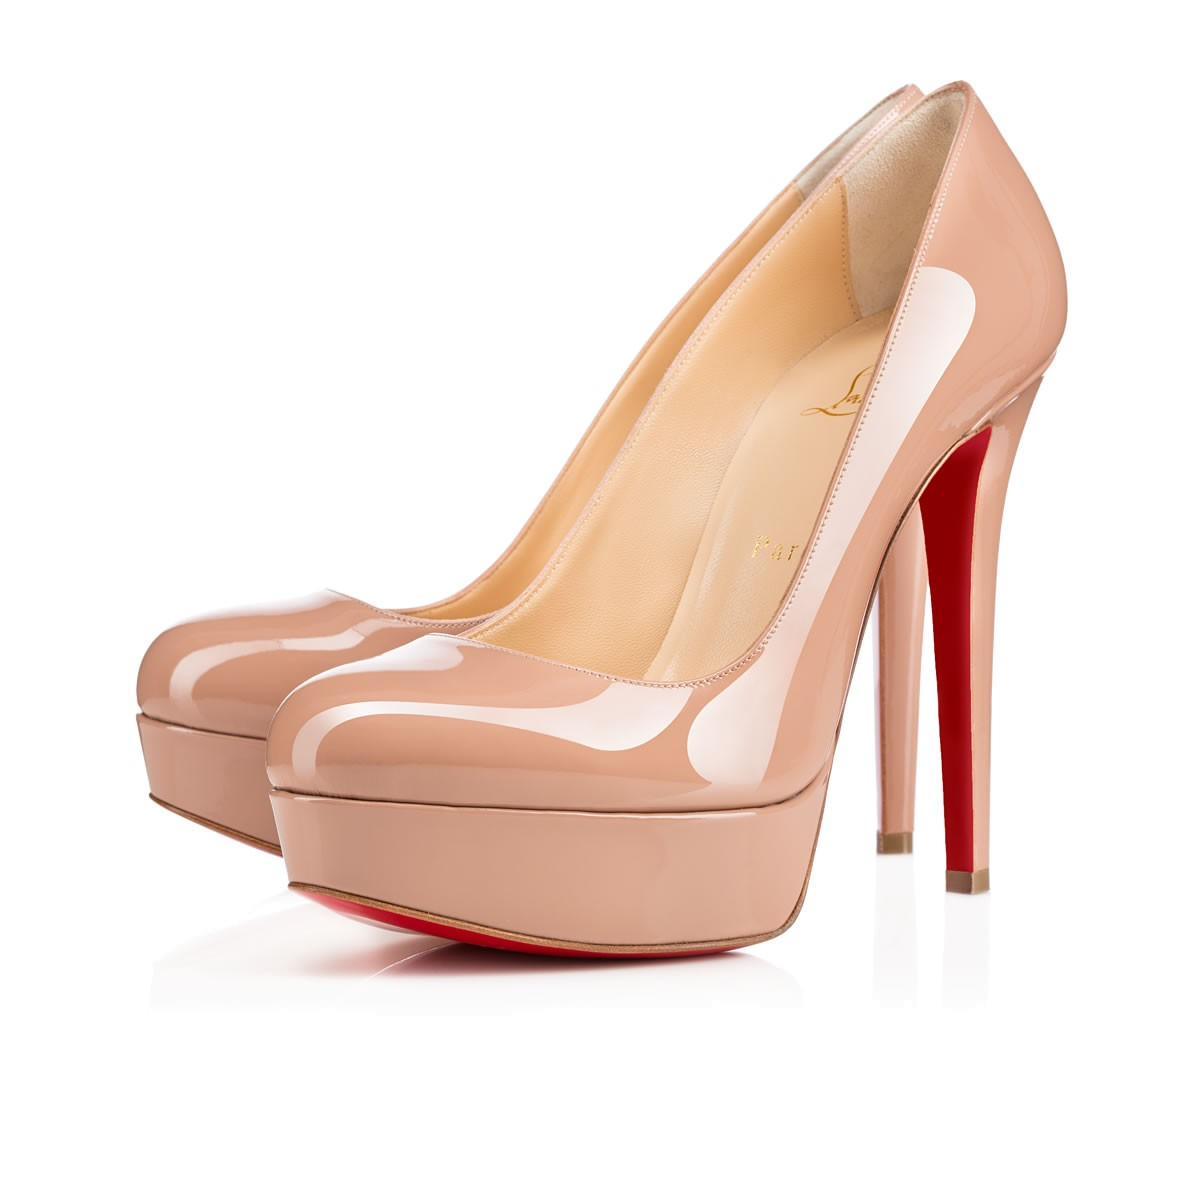 christian louboutin bianca 140mm nude patent reed fashion blog rh reedfashionblog blogspot com